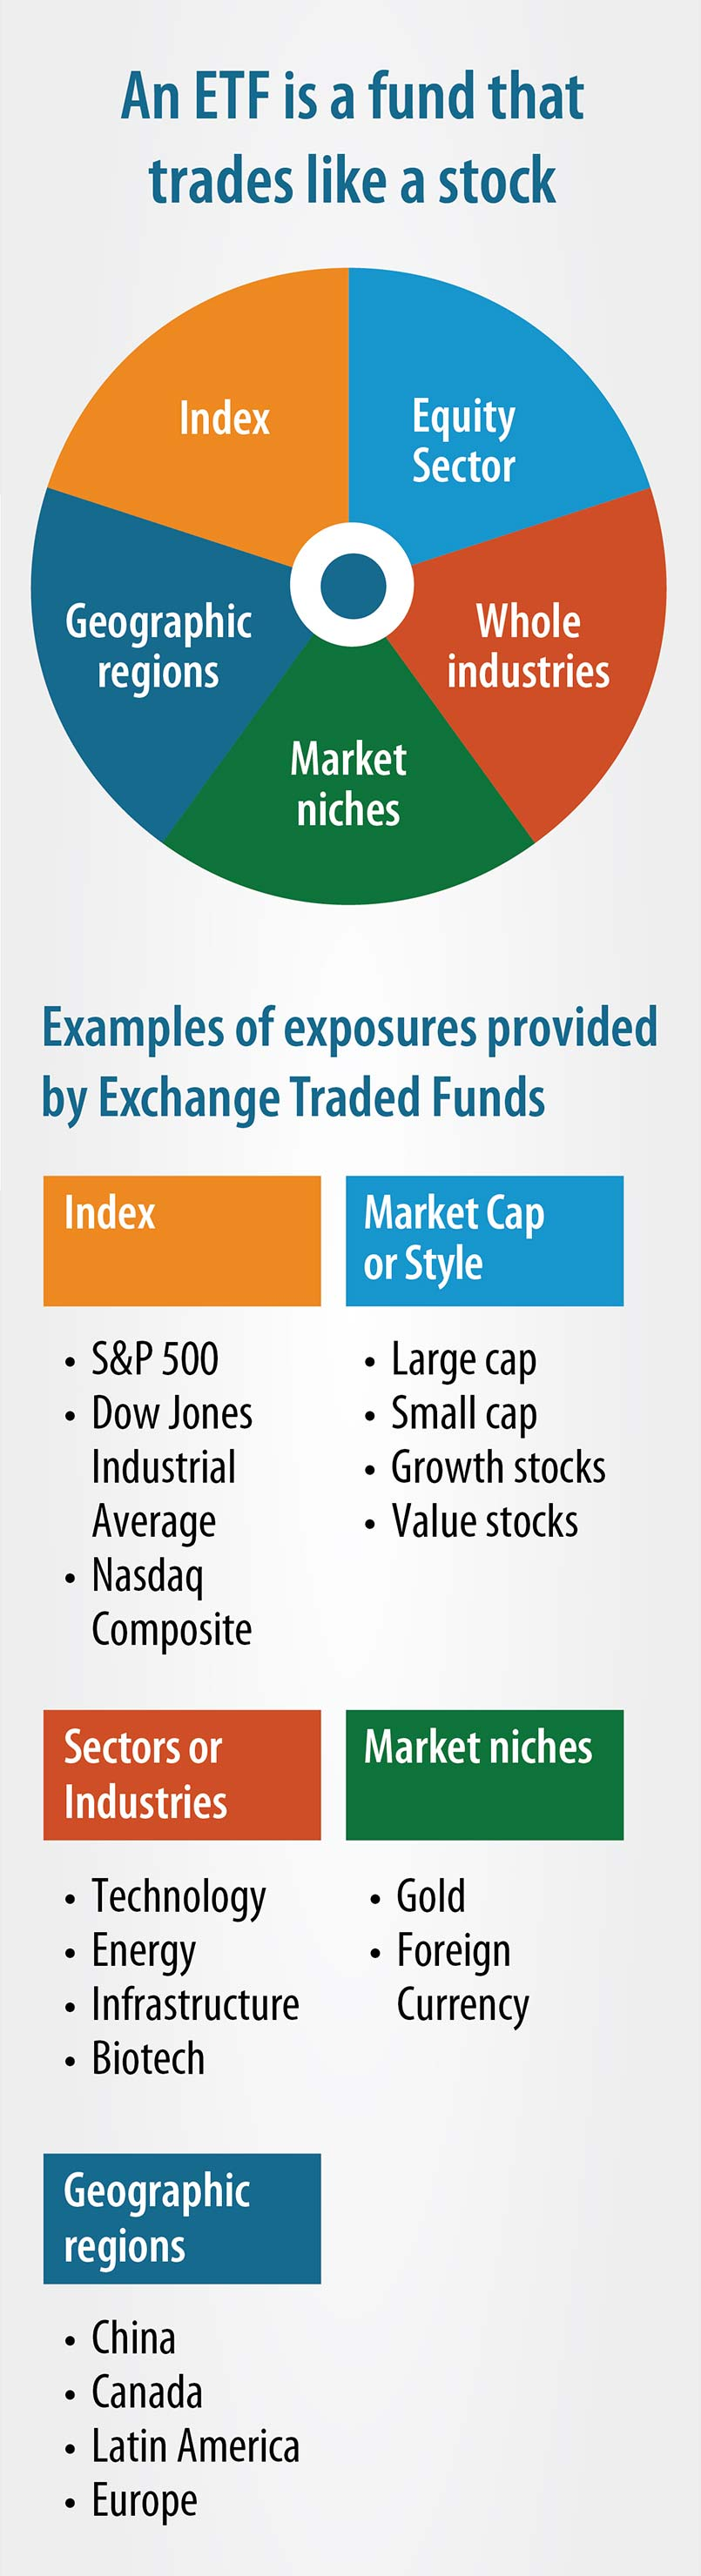 infographic - An ETF is a fund that trades like a stock